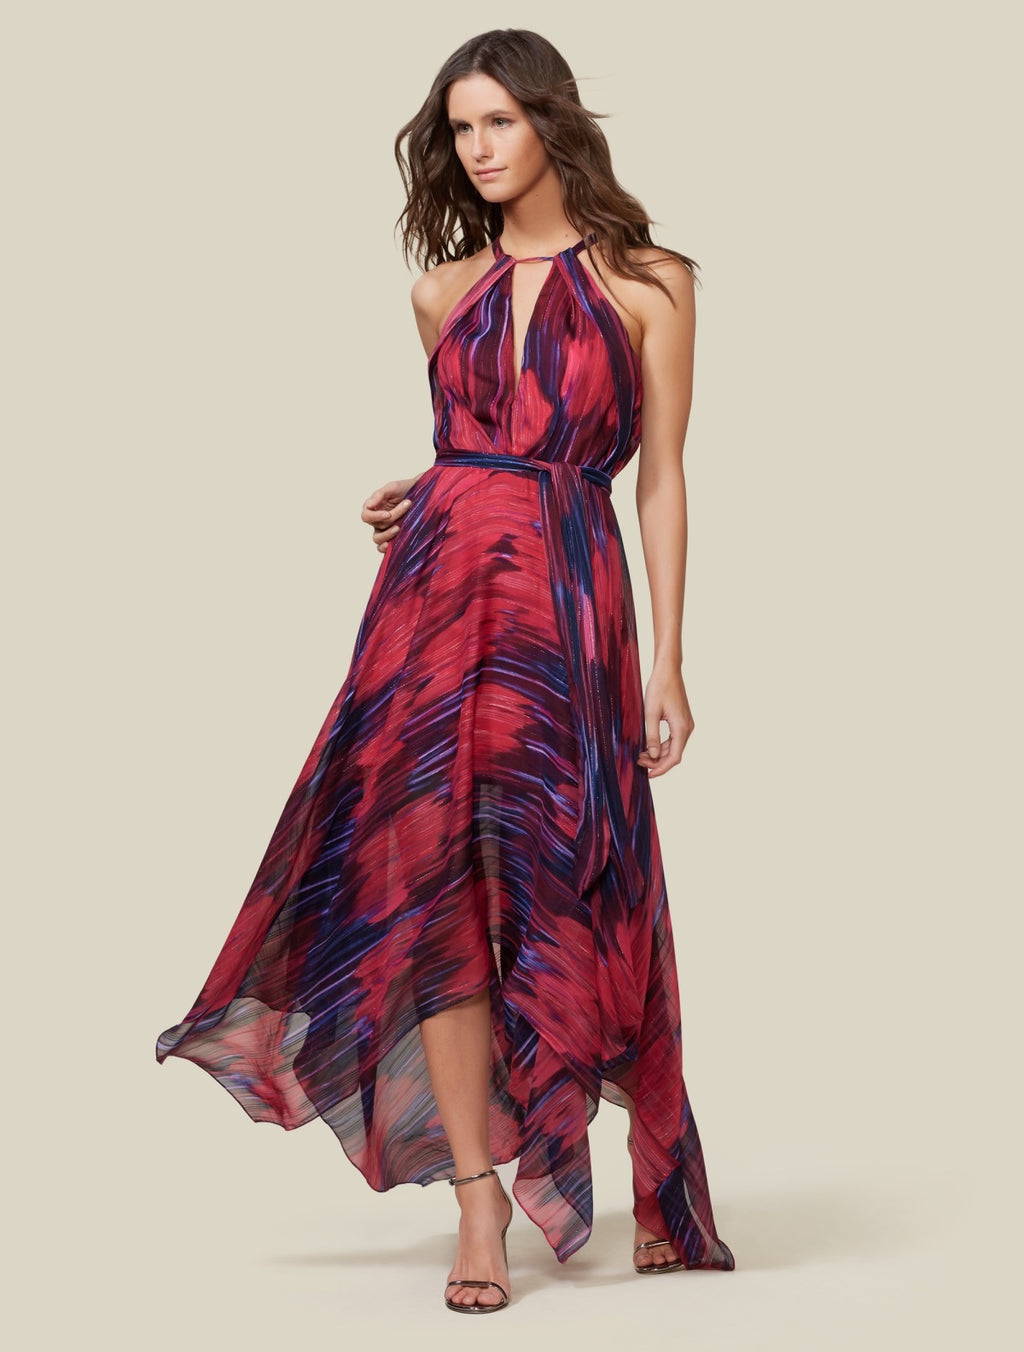 Halston Heritage Pink and Purple Long Dress with Hankerchief Hem